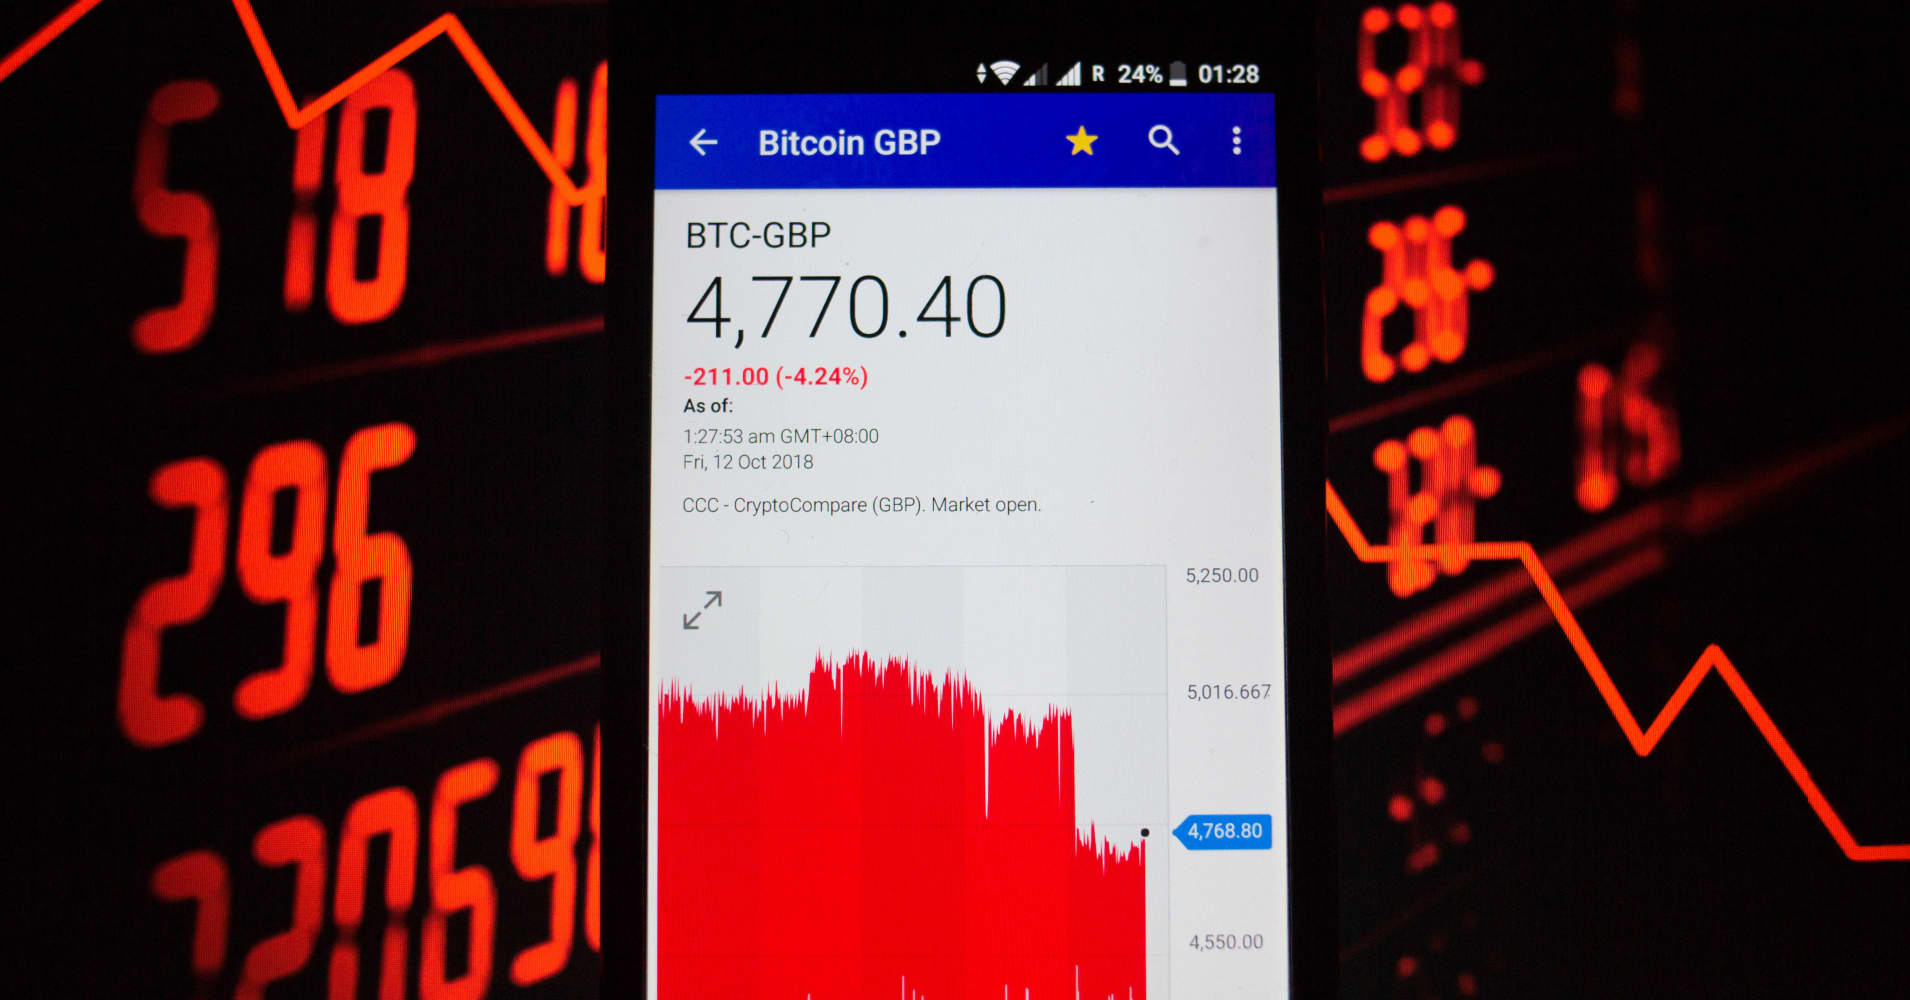 cnbc.com - Kate Rooney - Majority of bitcoin trading is a hoax, new study finds